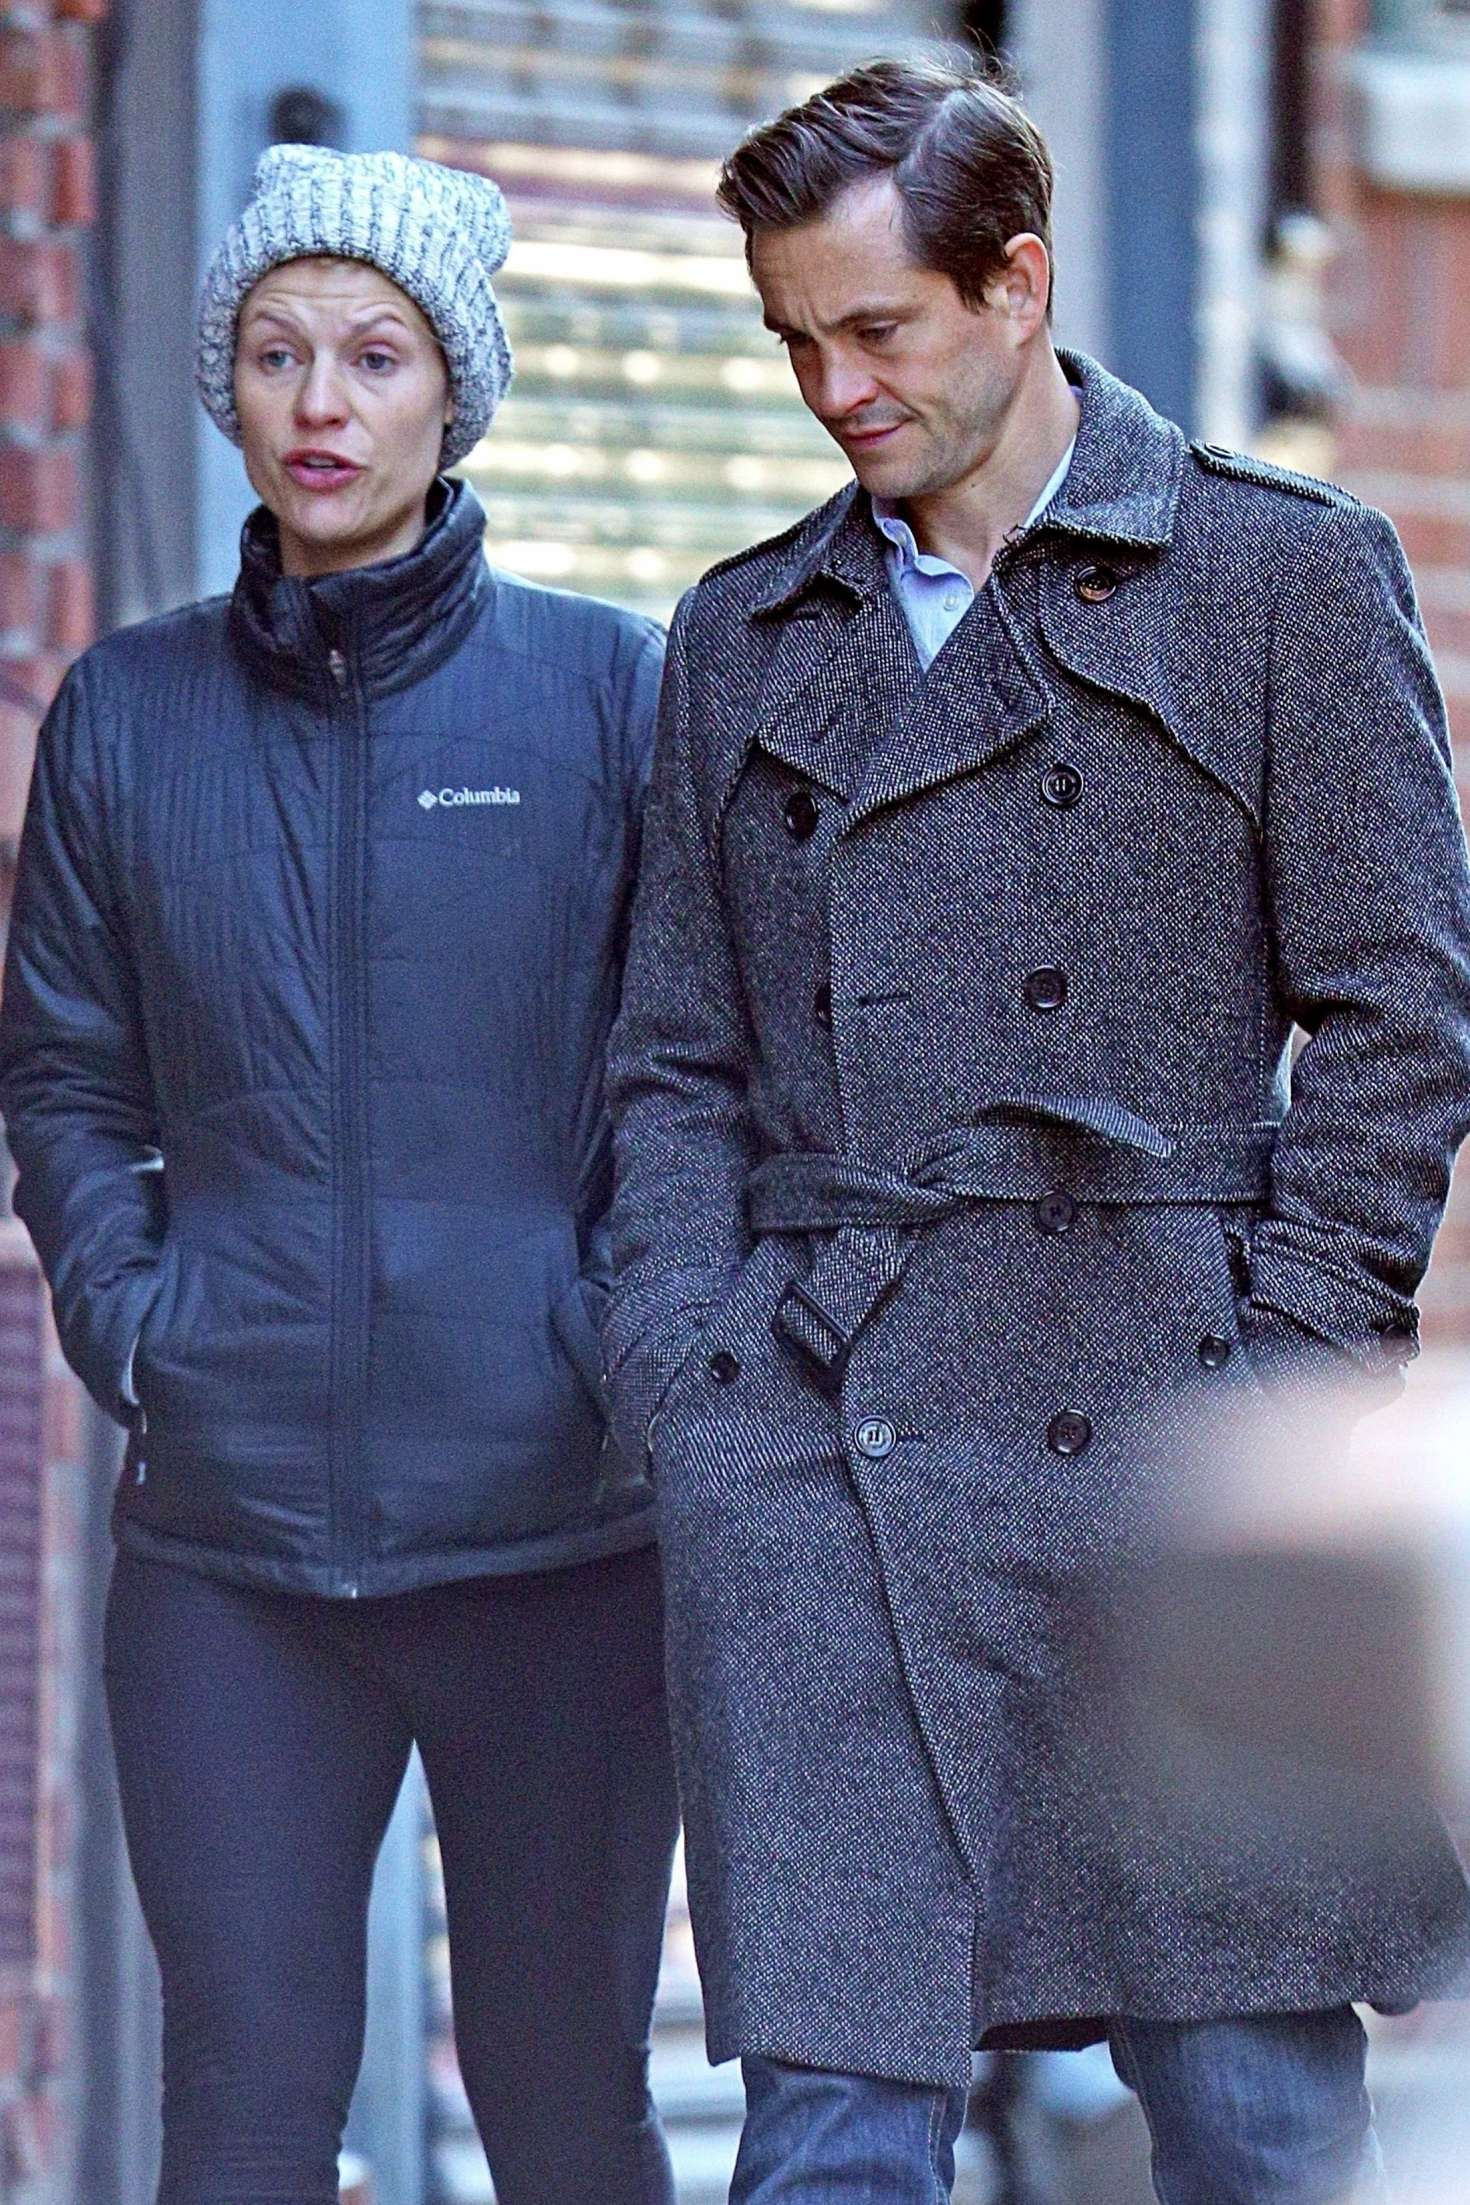 Claire Danes and her husband Hugh Dancy out in New York